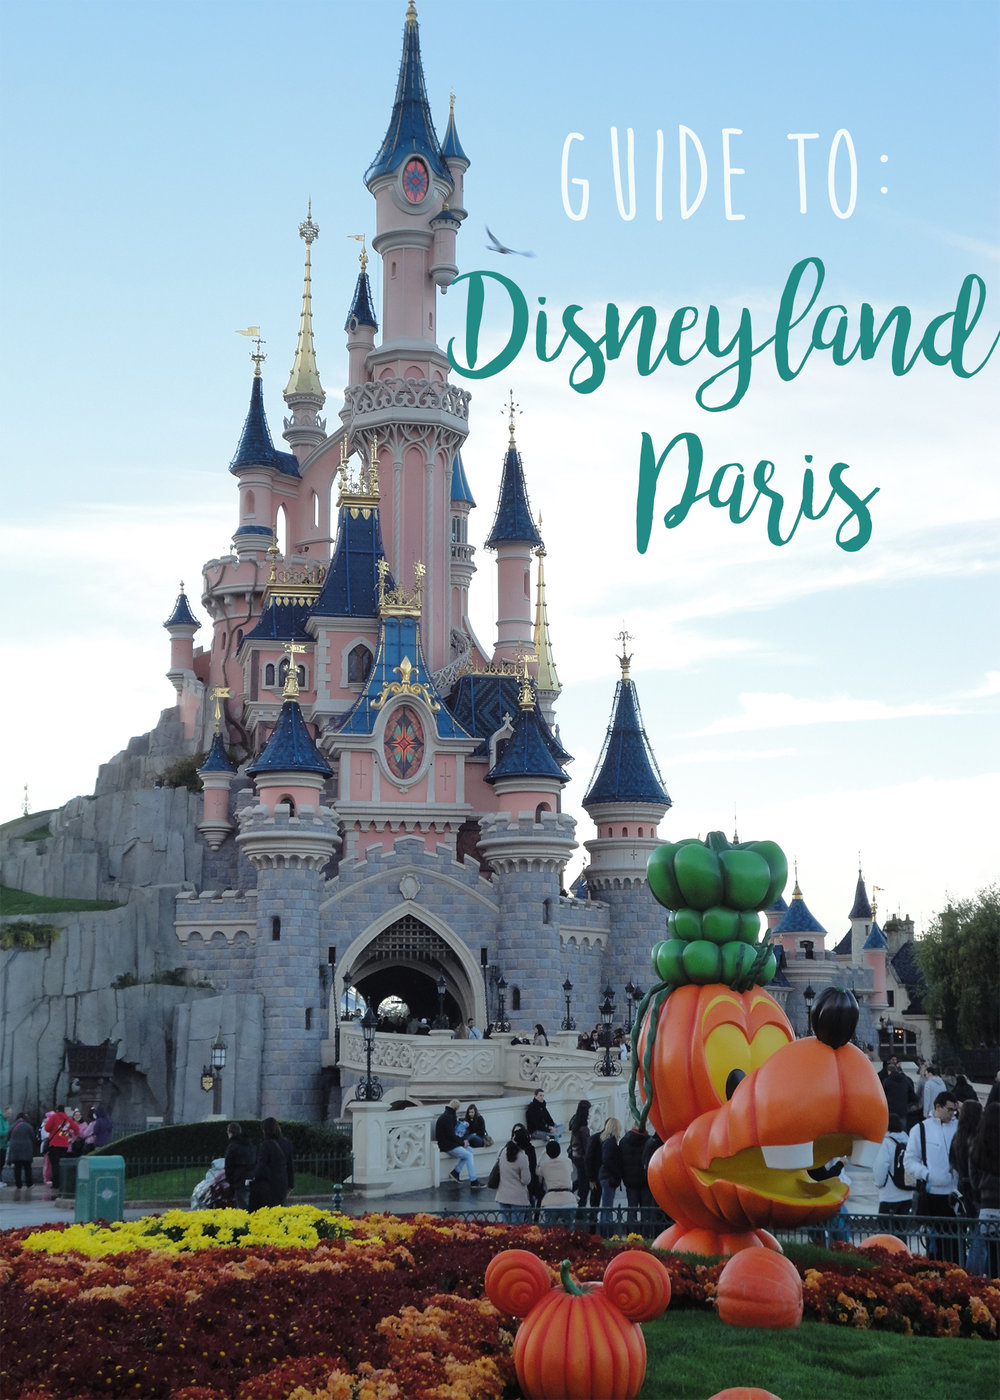 Disneyland Paris Guide